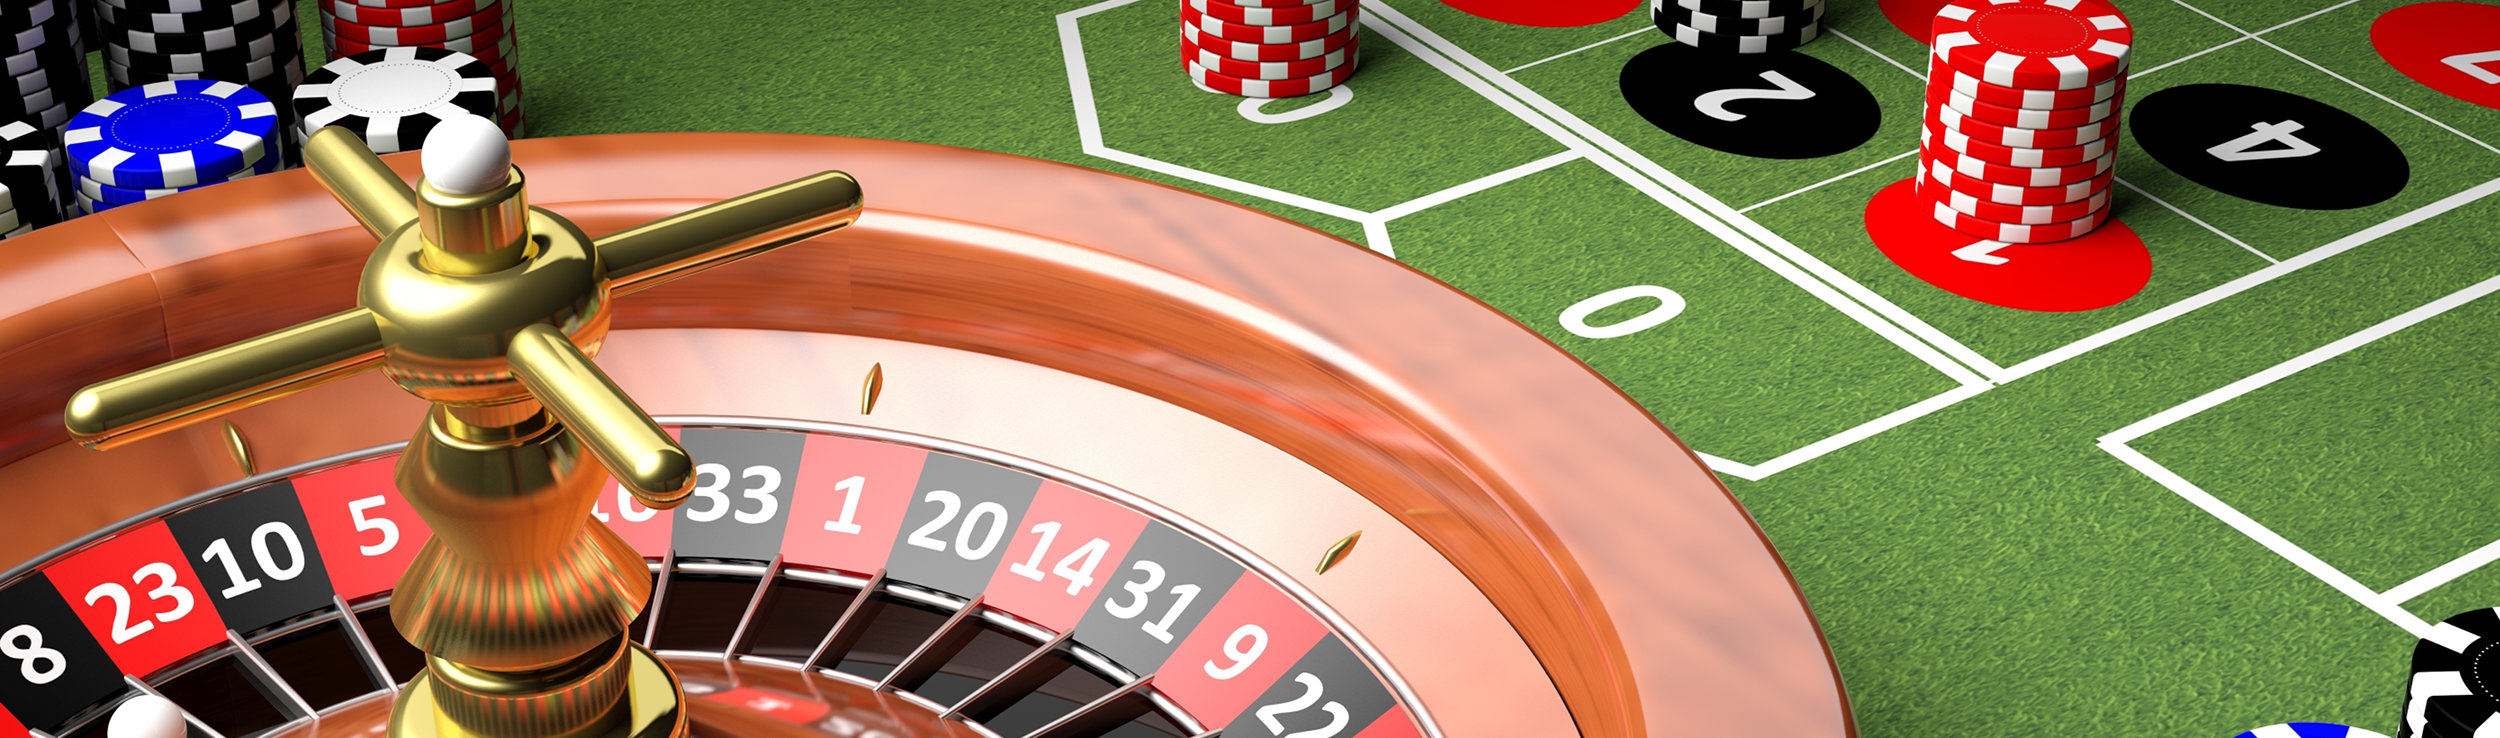 How to gamble with fun and enjoyment?